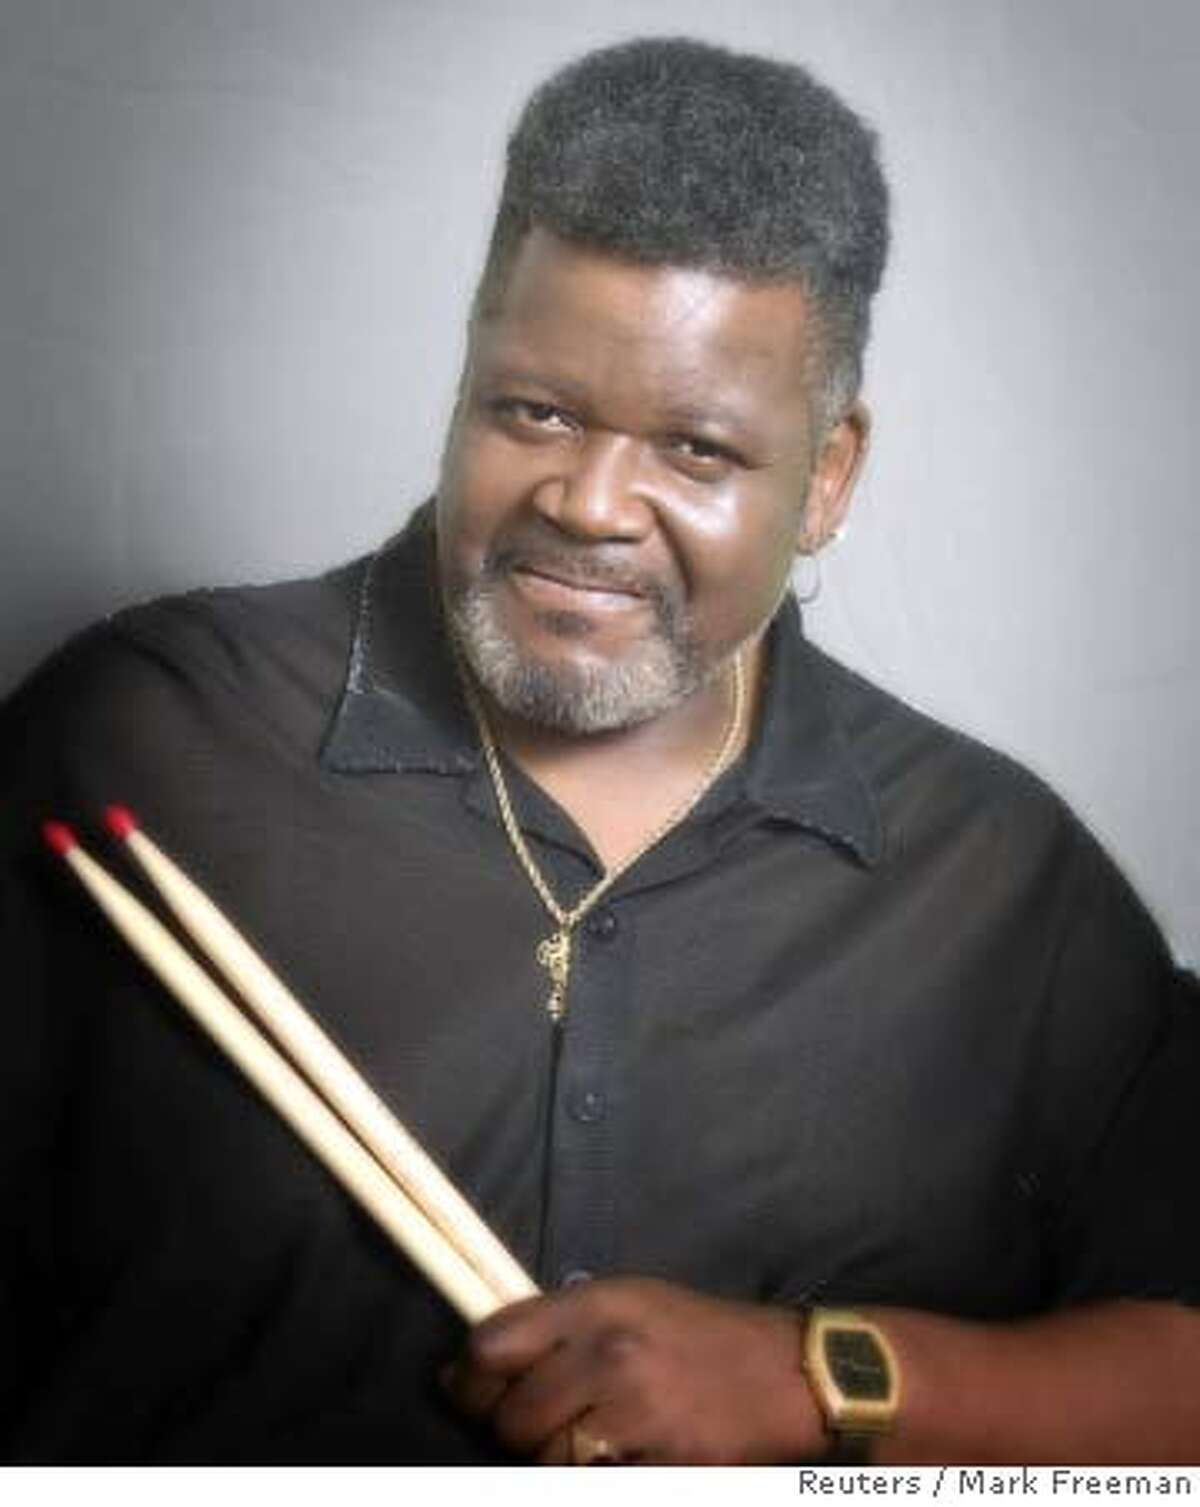 The late power drummer Buddy Miles is shown in this undated publicity photograph. Miles, who played with Jimi Hendrix in his short-lived group Band of Gypsys, died at his home in Austin, Texas on Wednesday, according to publicist Duane Lee on February 27, 2008. He was 60. Miles, a former teen prodigy, helped develop such musical forms as funk metal and acid jazz thanks to his work with such guitarists as John McLaughlin, Mike Bloomfield and Carlos Santana. In 1967, he and Bloomfield co-founded Electric Flag, whose rock-brass sound influenced Chicago and Blood, Sweat & Tears. REUTERS/Mark Freeman/Handout (UNITED STATES). NO SALES. NO ARCHIVES. FOR EDITORIAL USE ONLY. NOT FOR SALE FOR MARKETING OR ADVERTISING CAMPAIGNS.. SALESOUT NARCH EUO